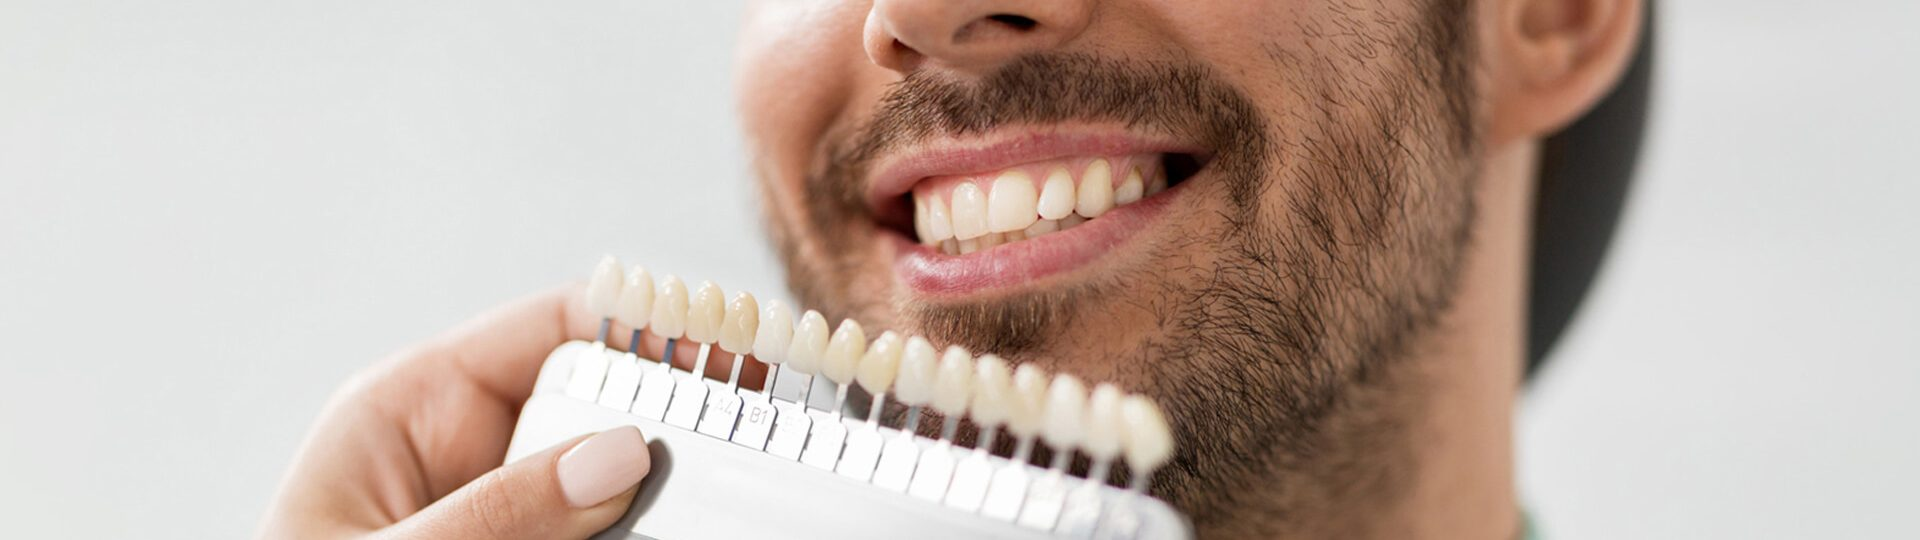 Cosmetic Procedures with Dental Veneers Enhances the Appearance of Your Teeth and Smile